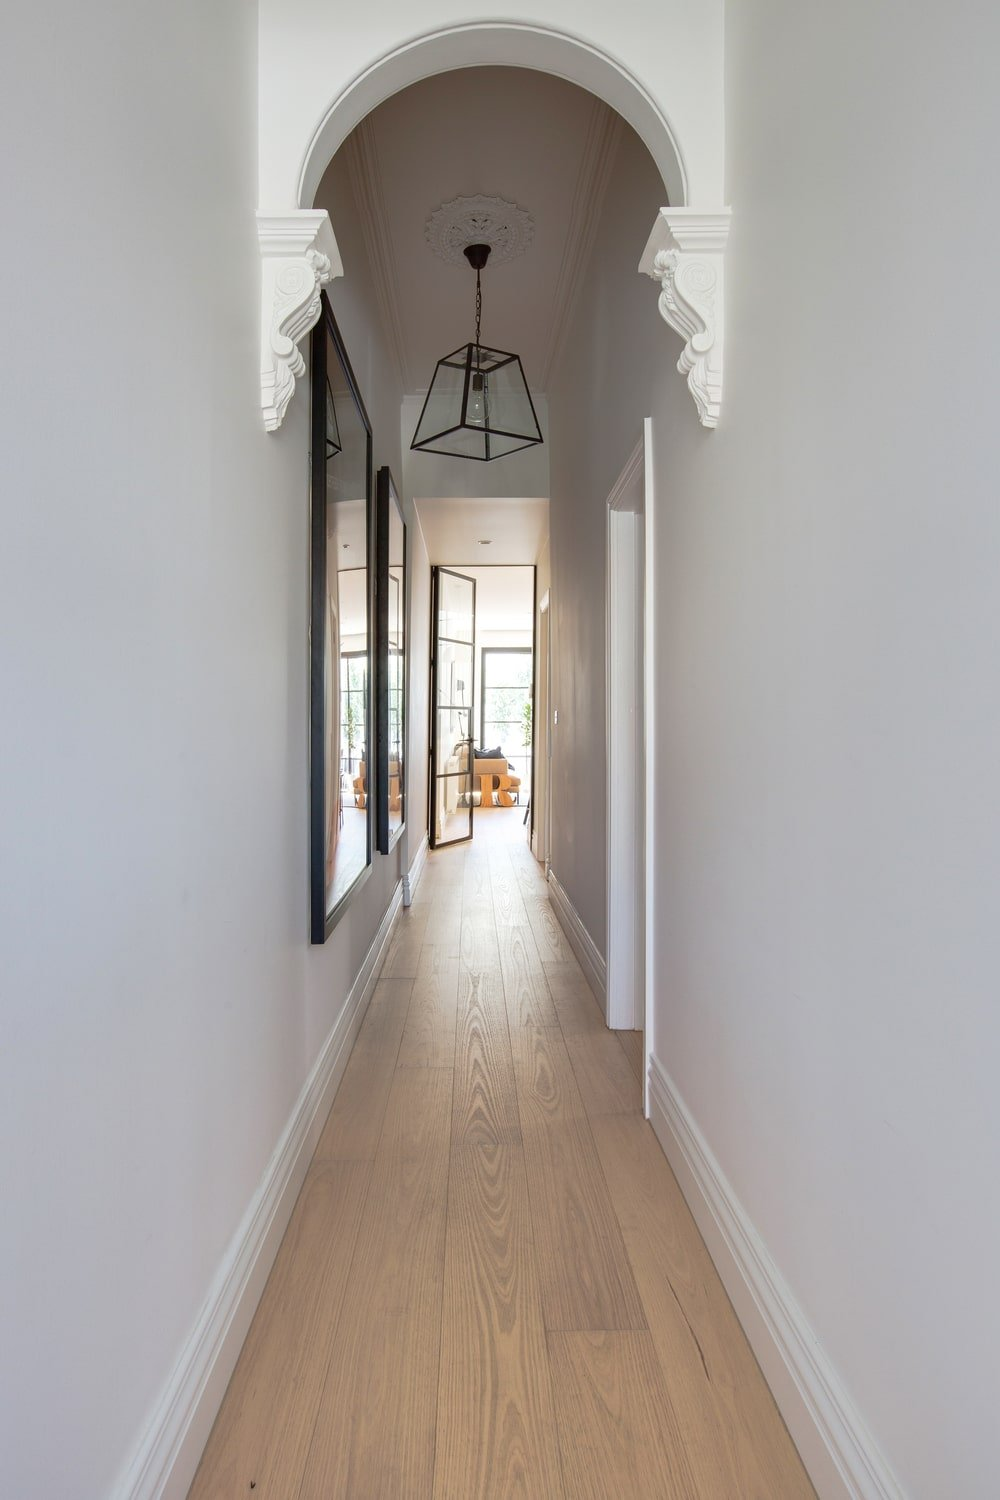 This is a long and narrow hallway-like foyer with white walls, white arches and wall-mounted artworks on one side.